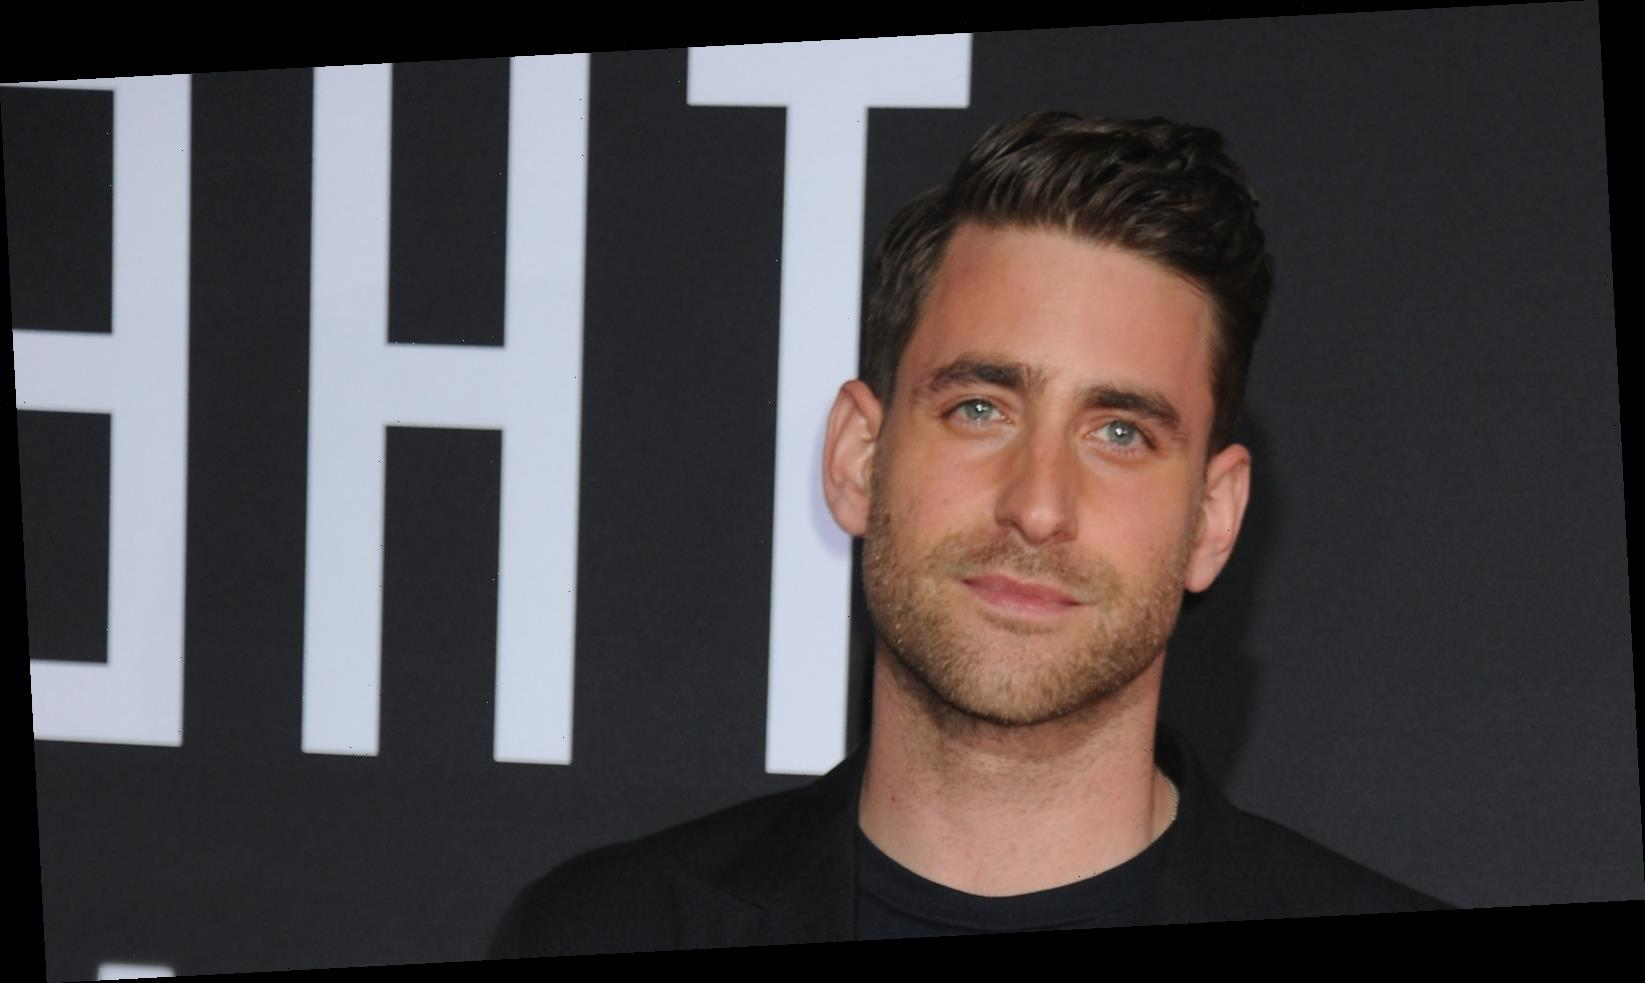 The movie that made Oliver Jackson-Cohen want to be an actor